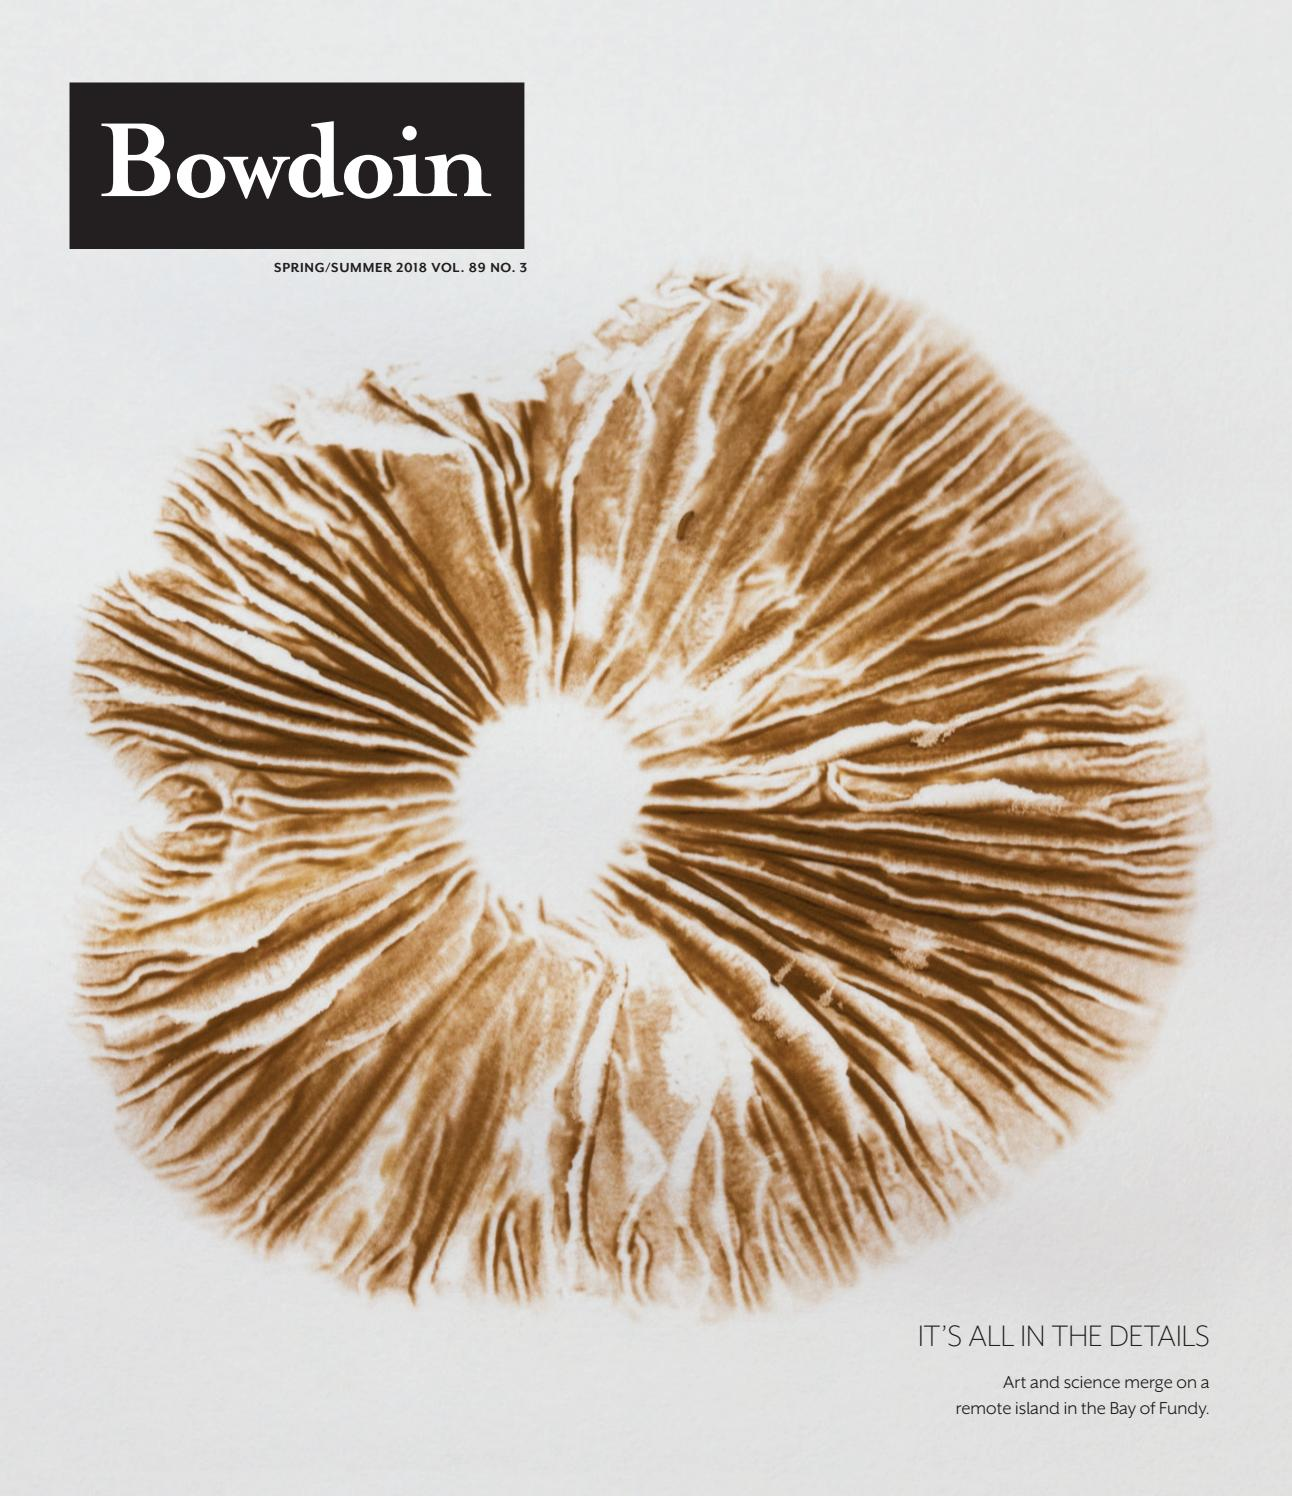 Bowdoin Magazine, Vol  89, No  3, Spring/Summer 2018 by